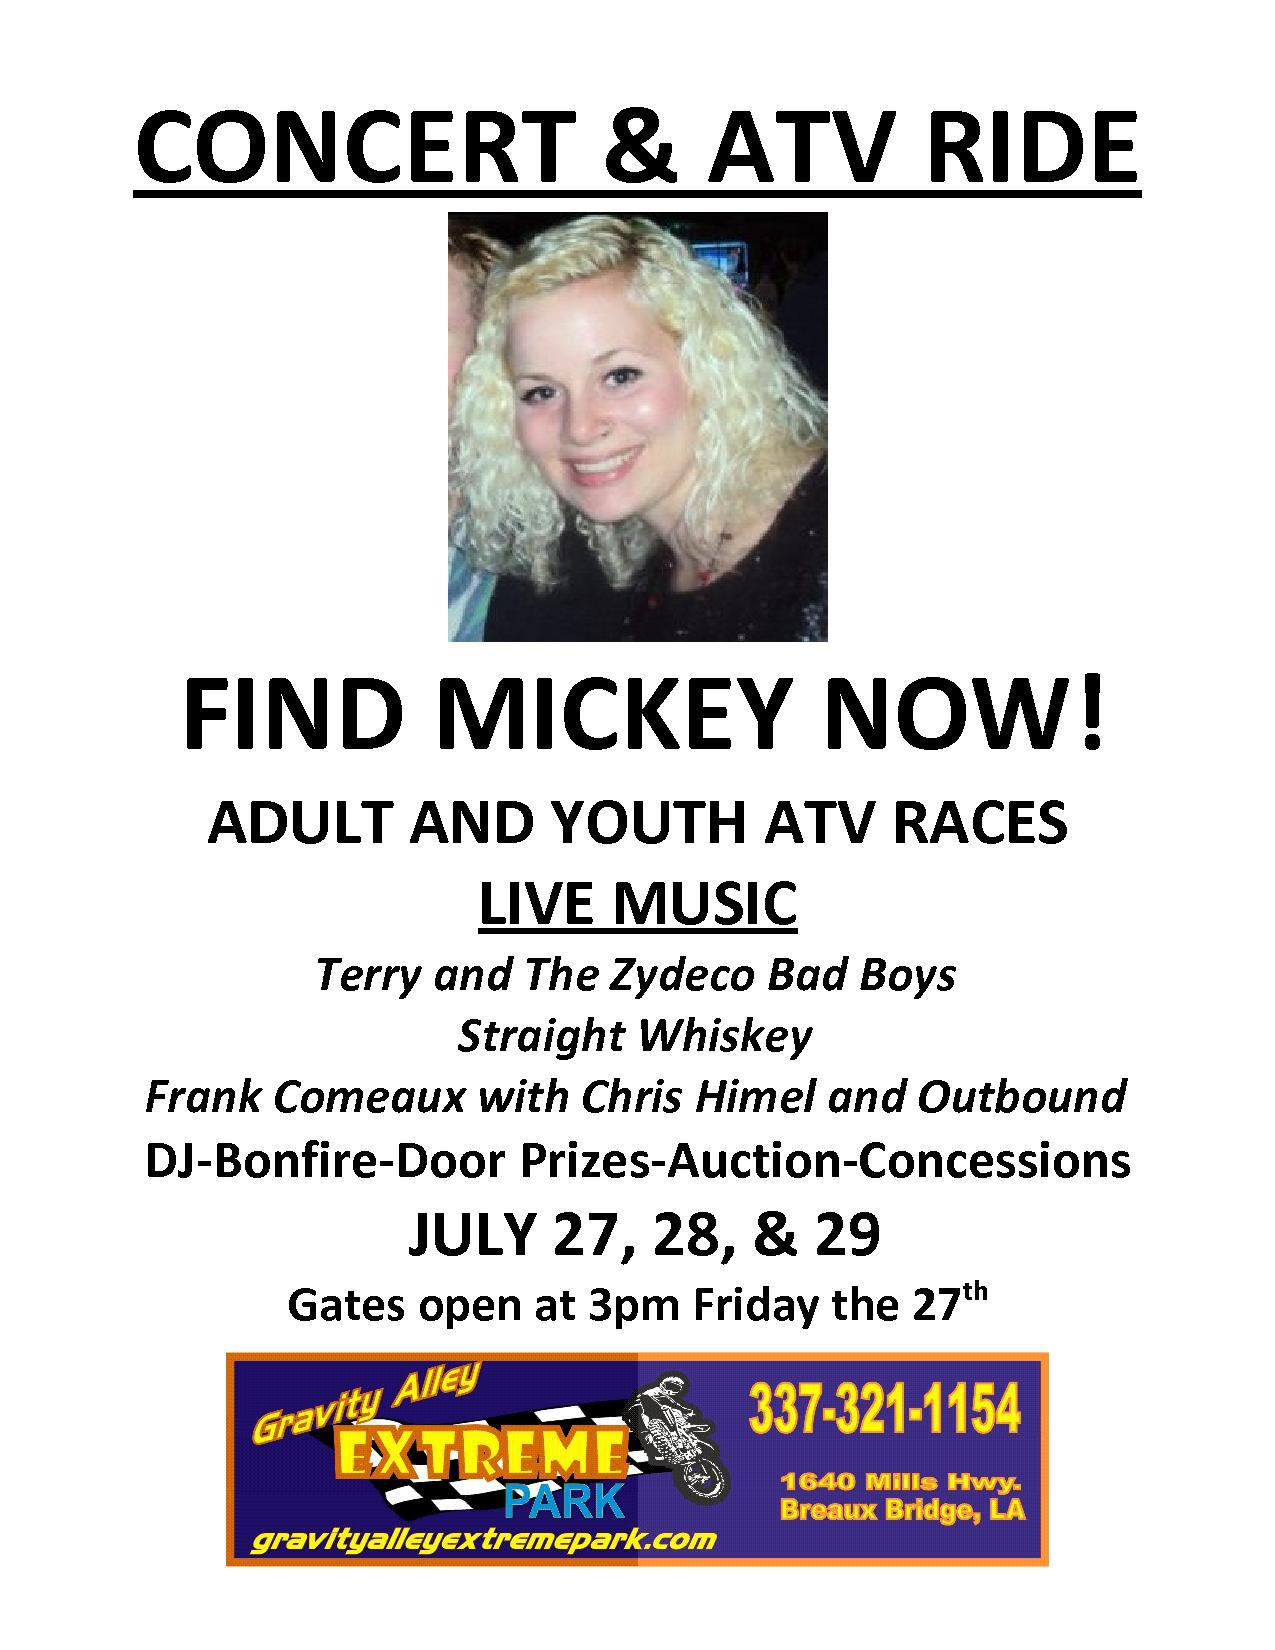 Concert and ATV Ride fundraiser for Mickey Shunick flyer